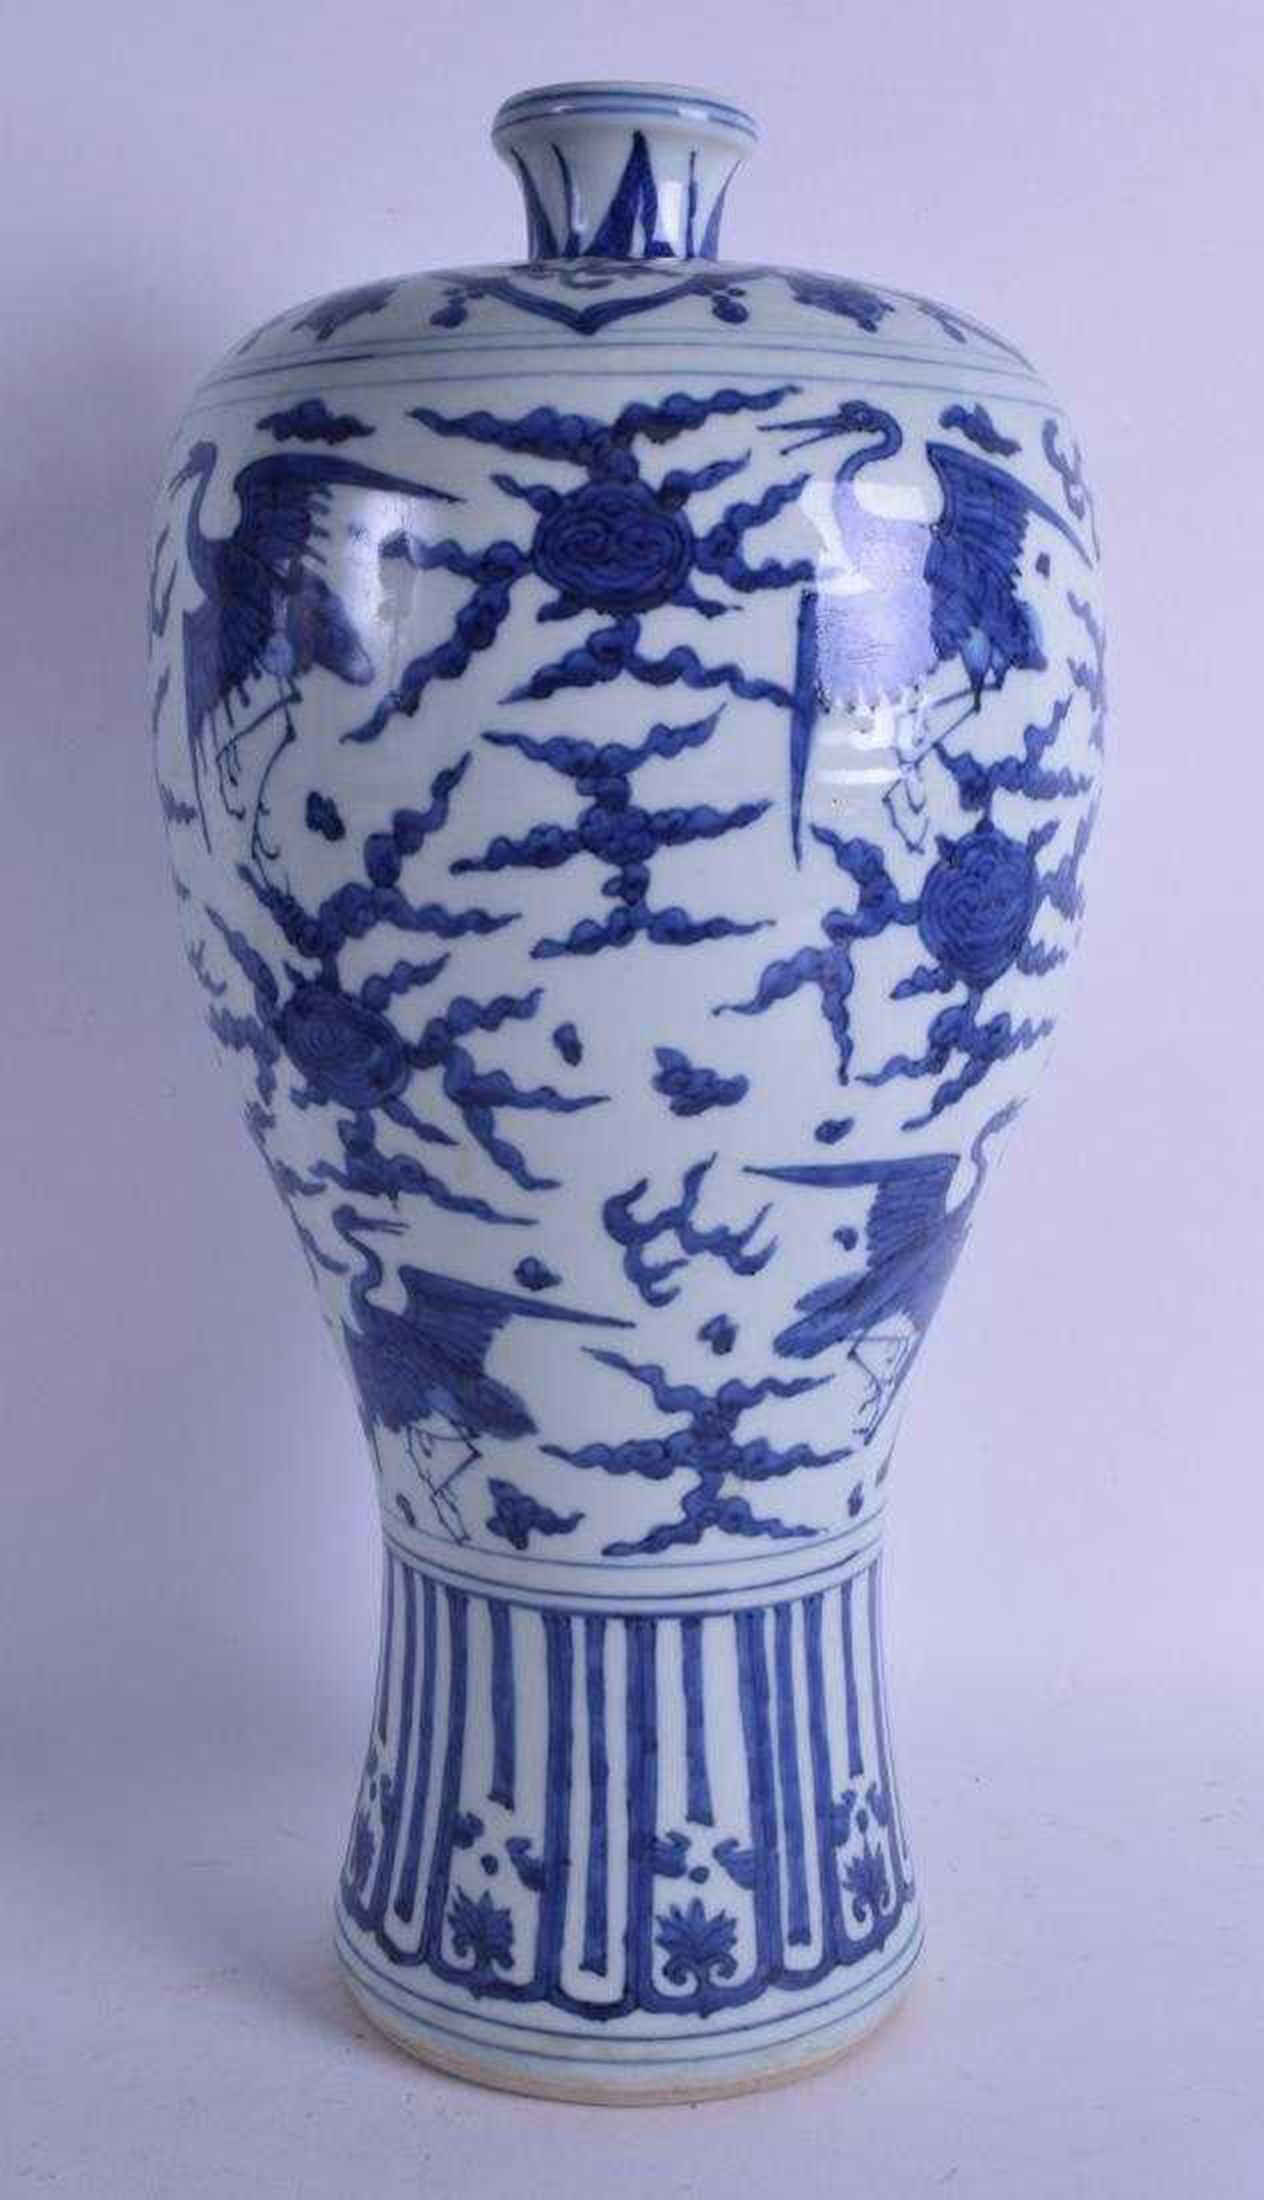 16 Trendy Blue Chinese Porcelain Vase 2021 free download blue chinese porcelain vase of large chinese blue and white meiping vase with 45 3